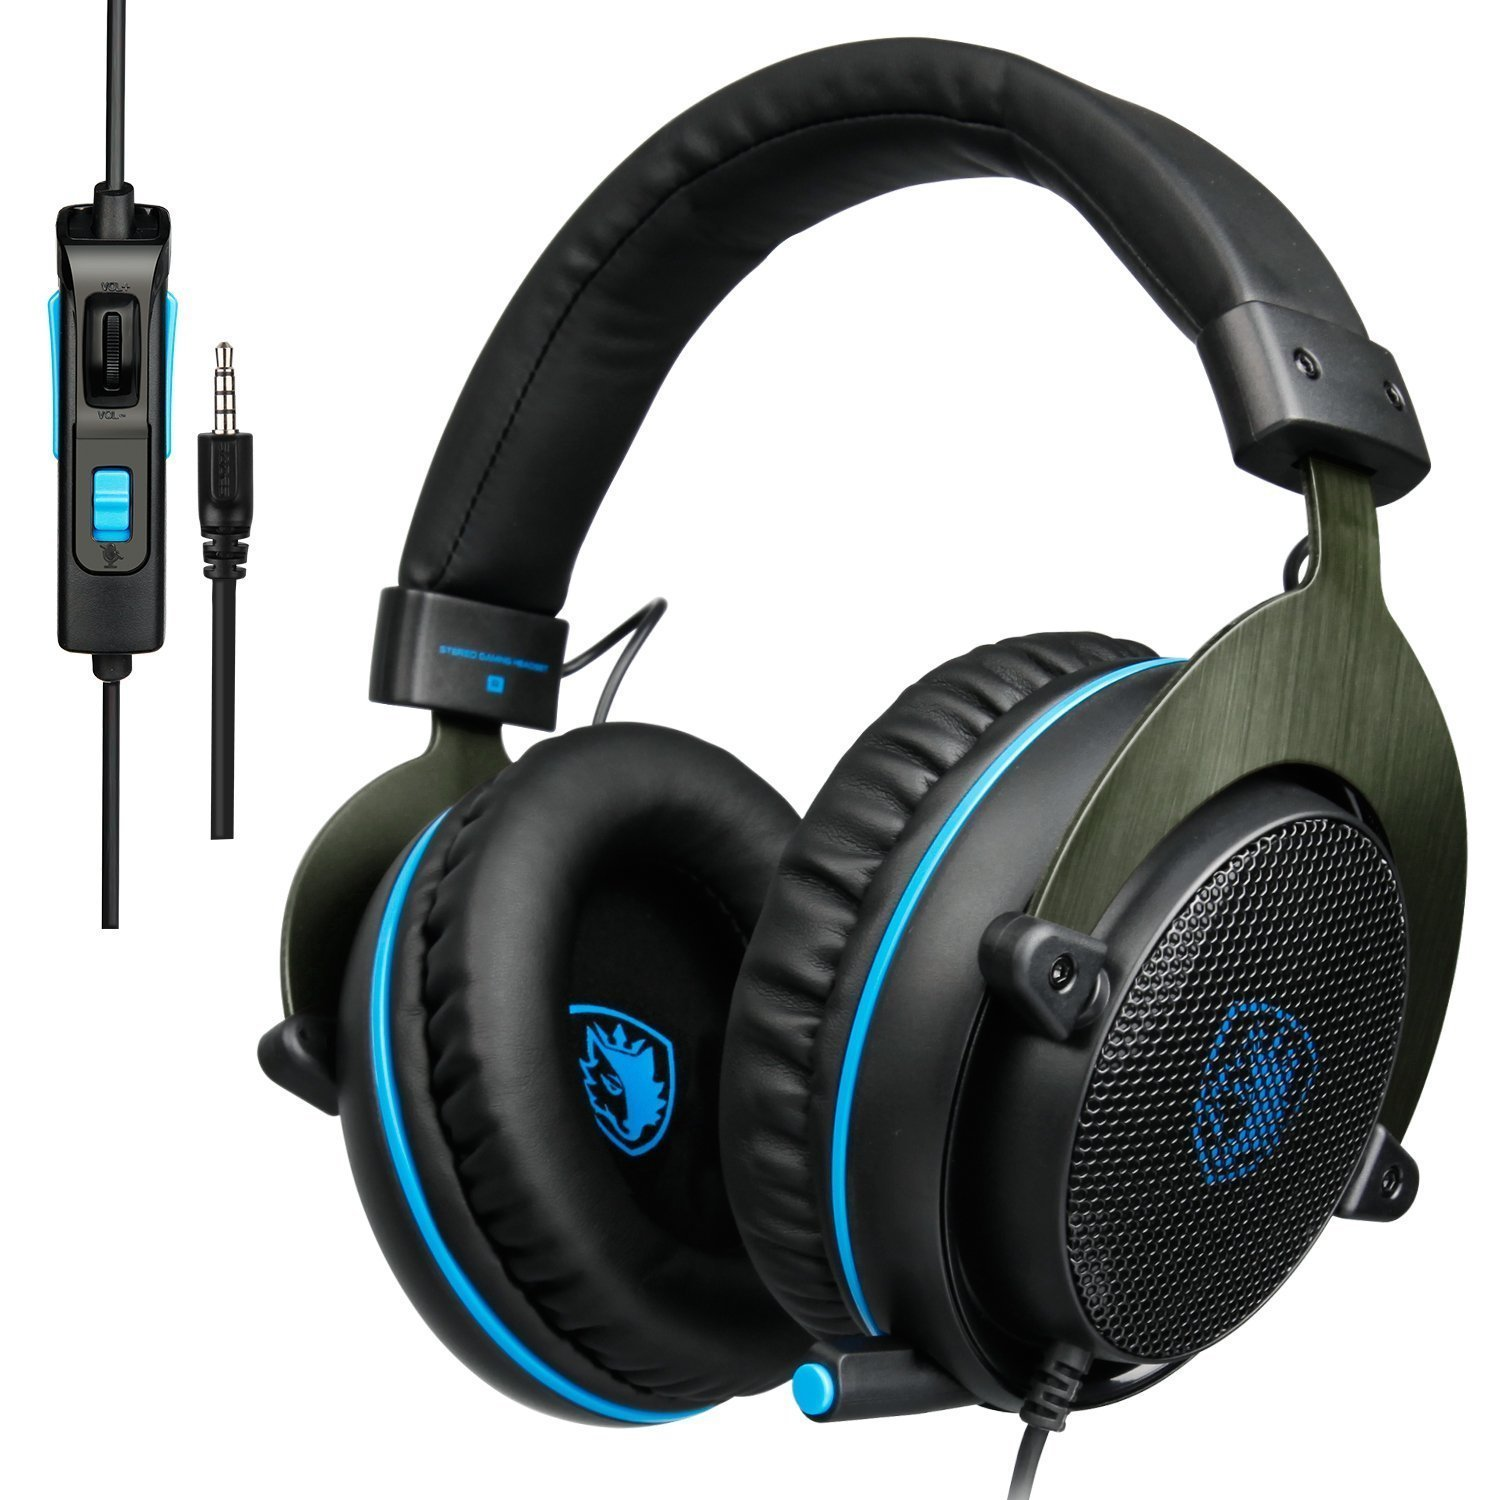 SADES Newest R3 Over-Ear Noise-isolating Stereo Gaming Headset Headband Headphones with Mic Volume-Control Deep Bass for PC Computers/Mac/Laptop/New Xbox One/PS4/Tablet/Phones-Black Blue